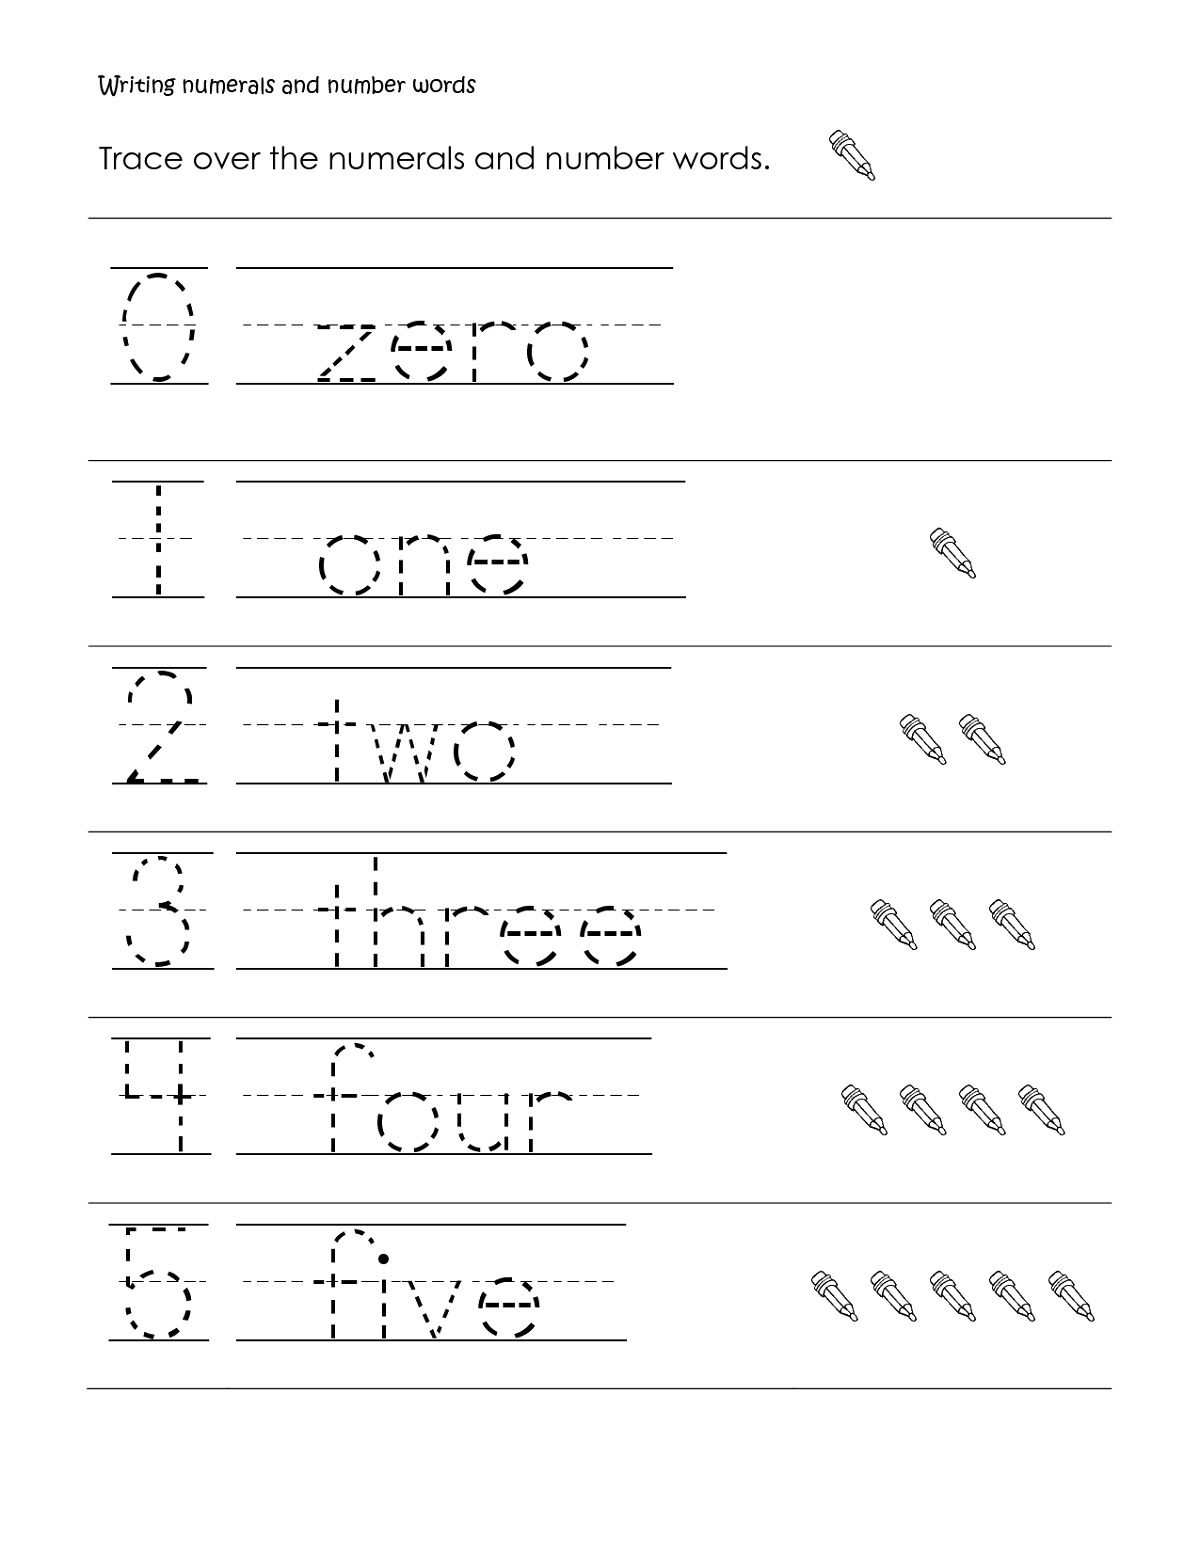 Handwriting Worksheets for 1st Grade